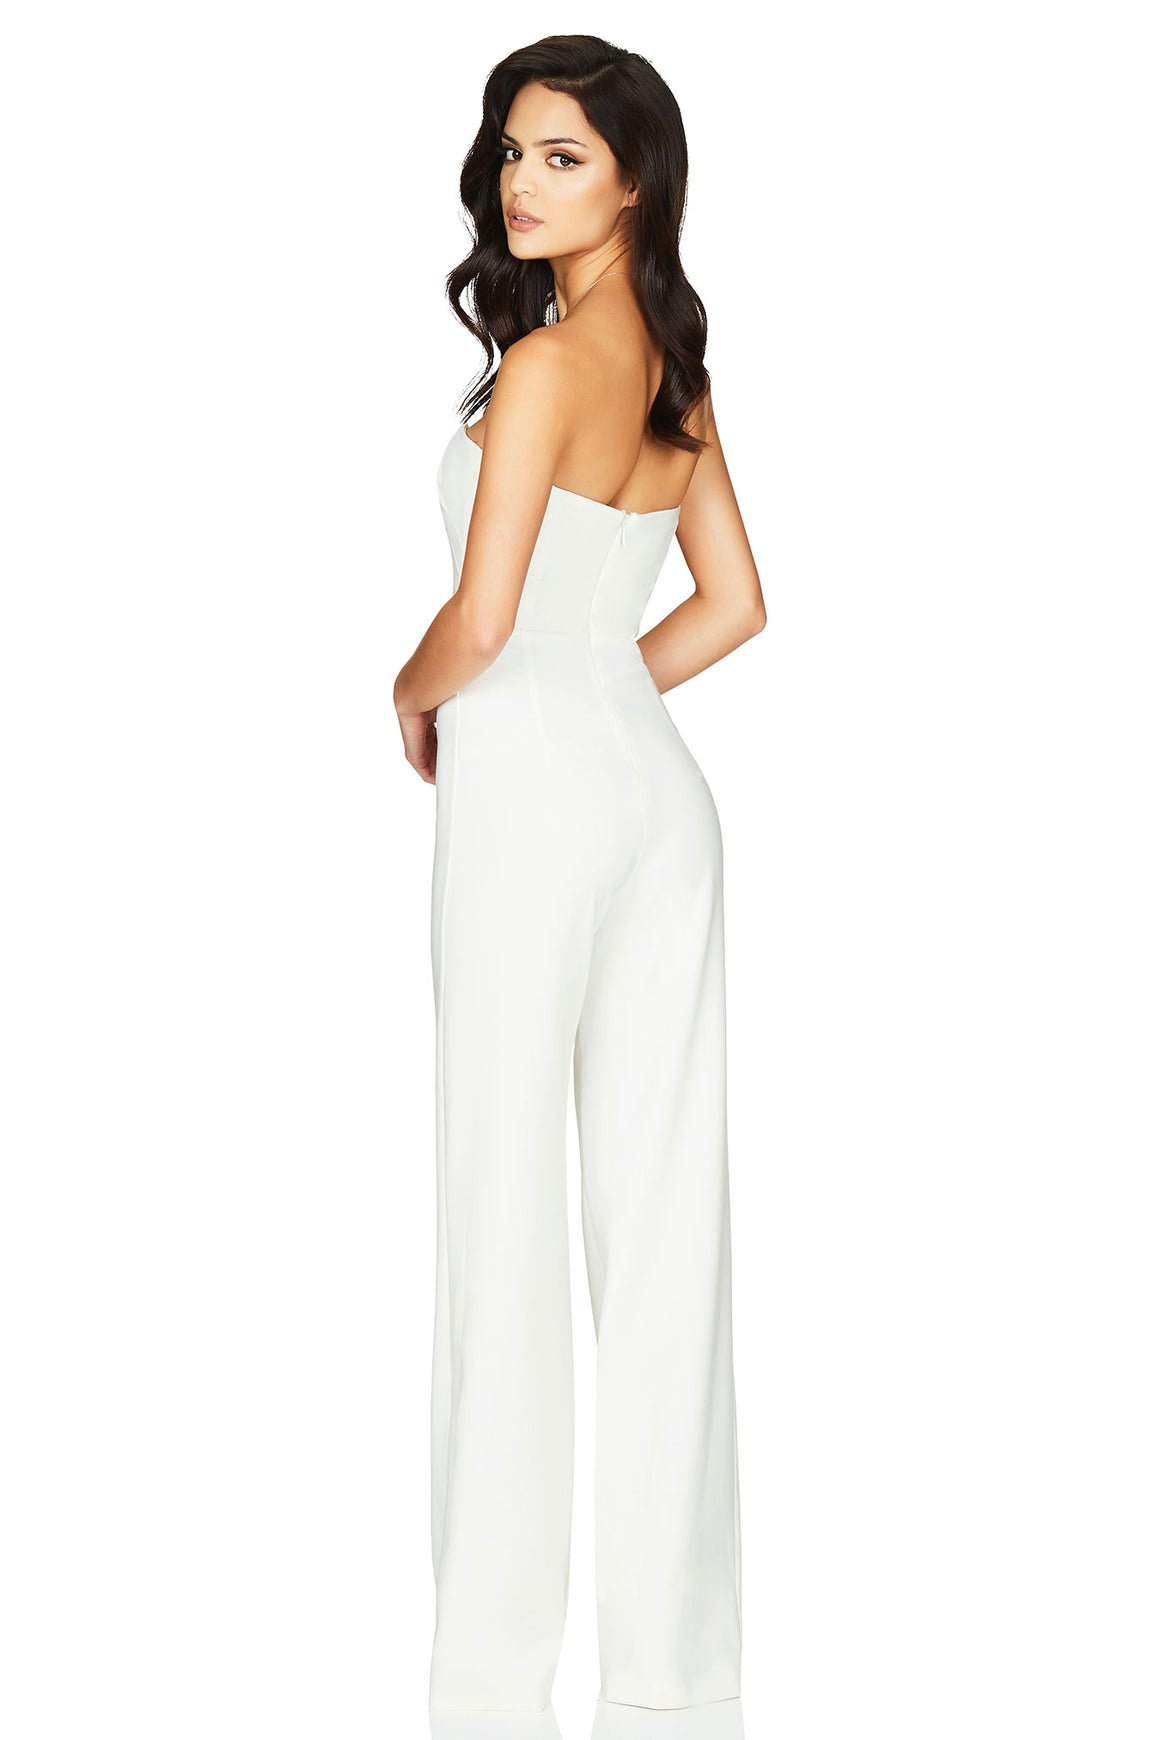 Bisous Jumpsuit - White [PRE-ORDER] - Miss Runway Boutique